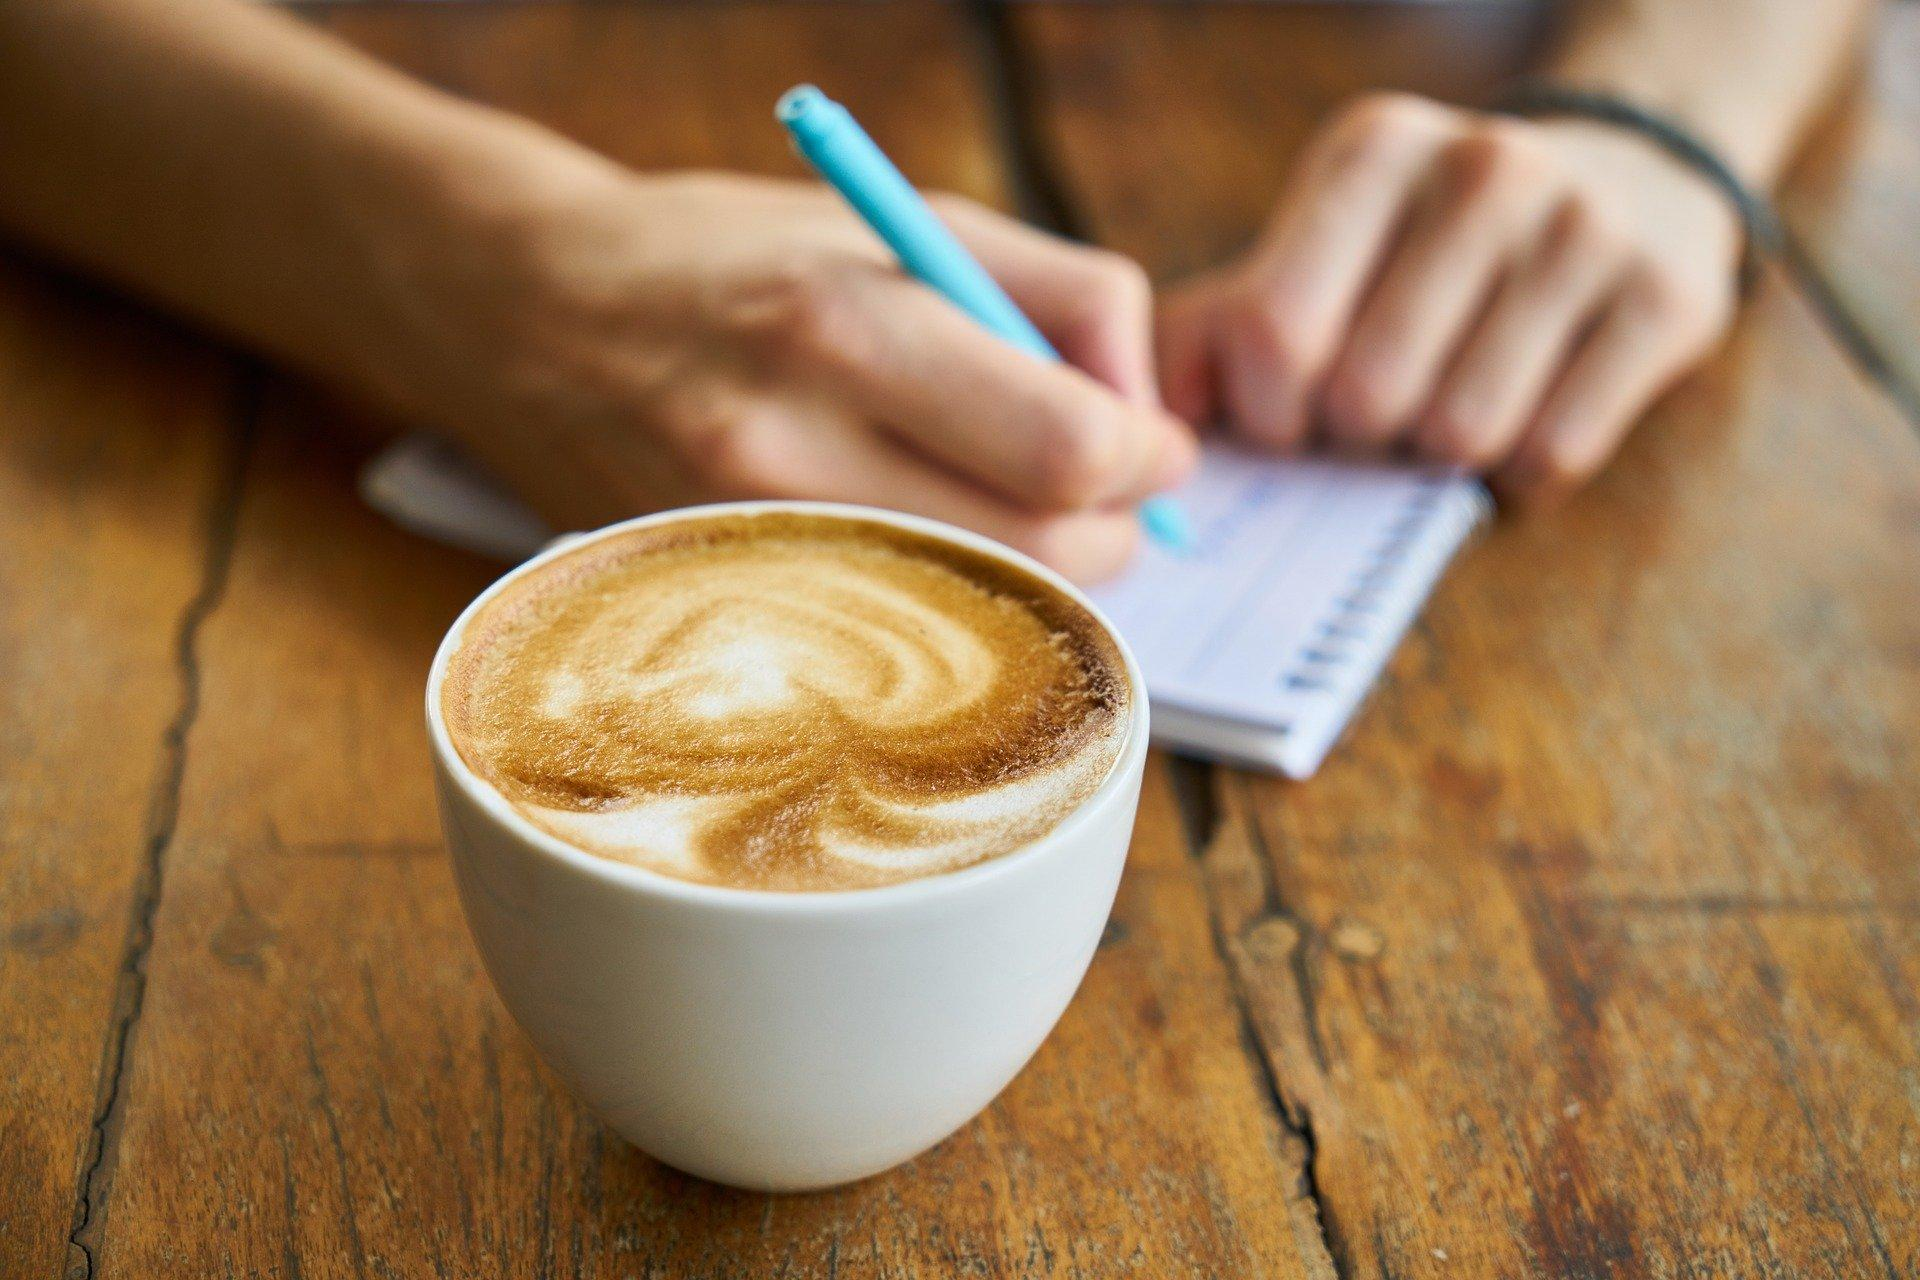 Hotel owner writing a list and having a coffee